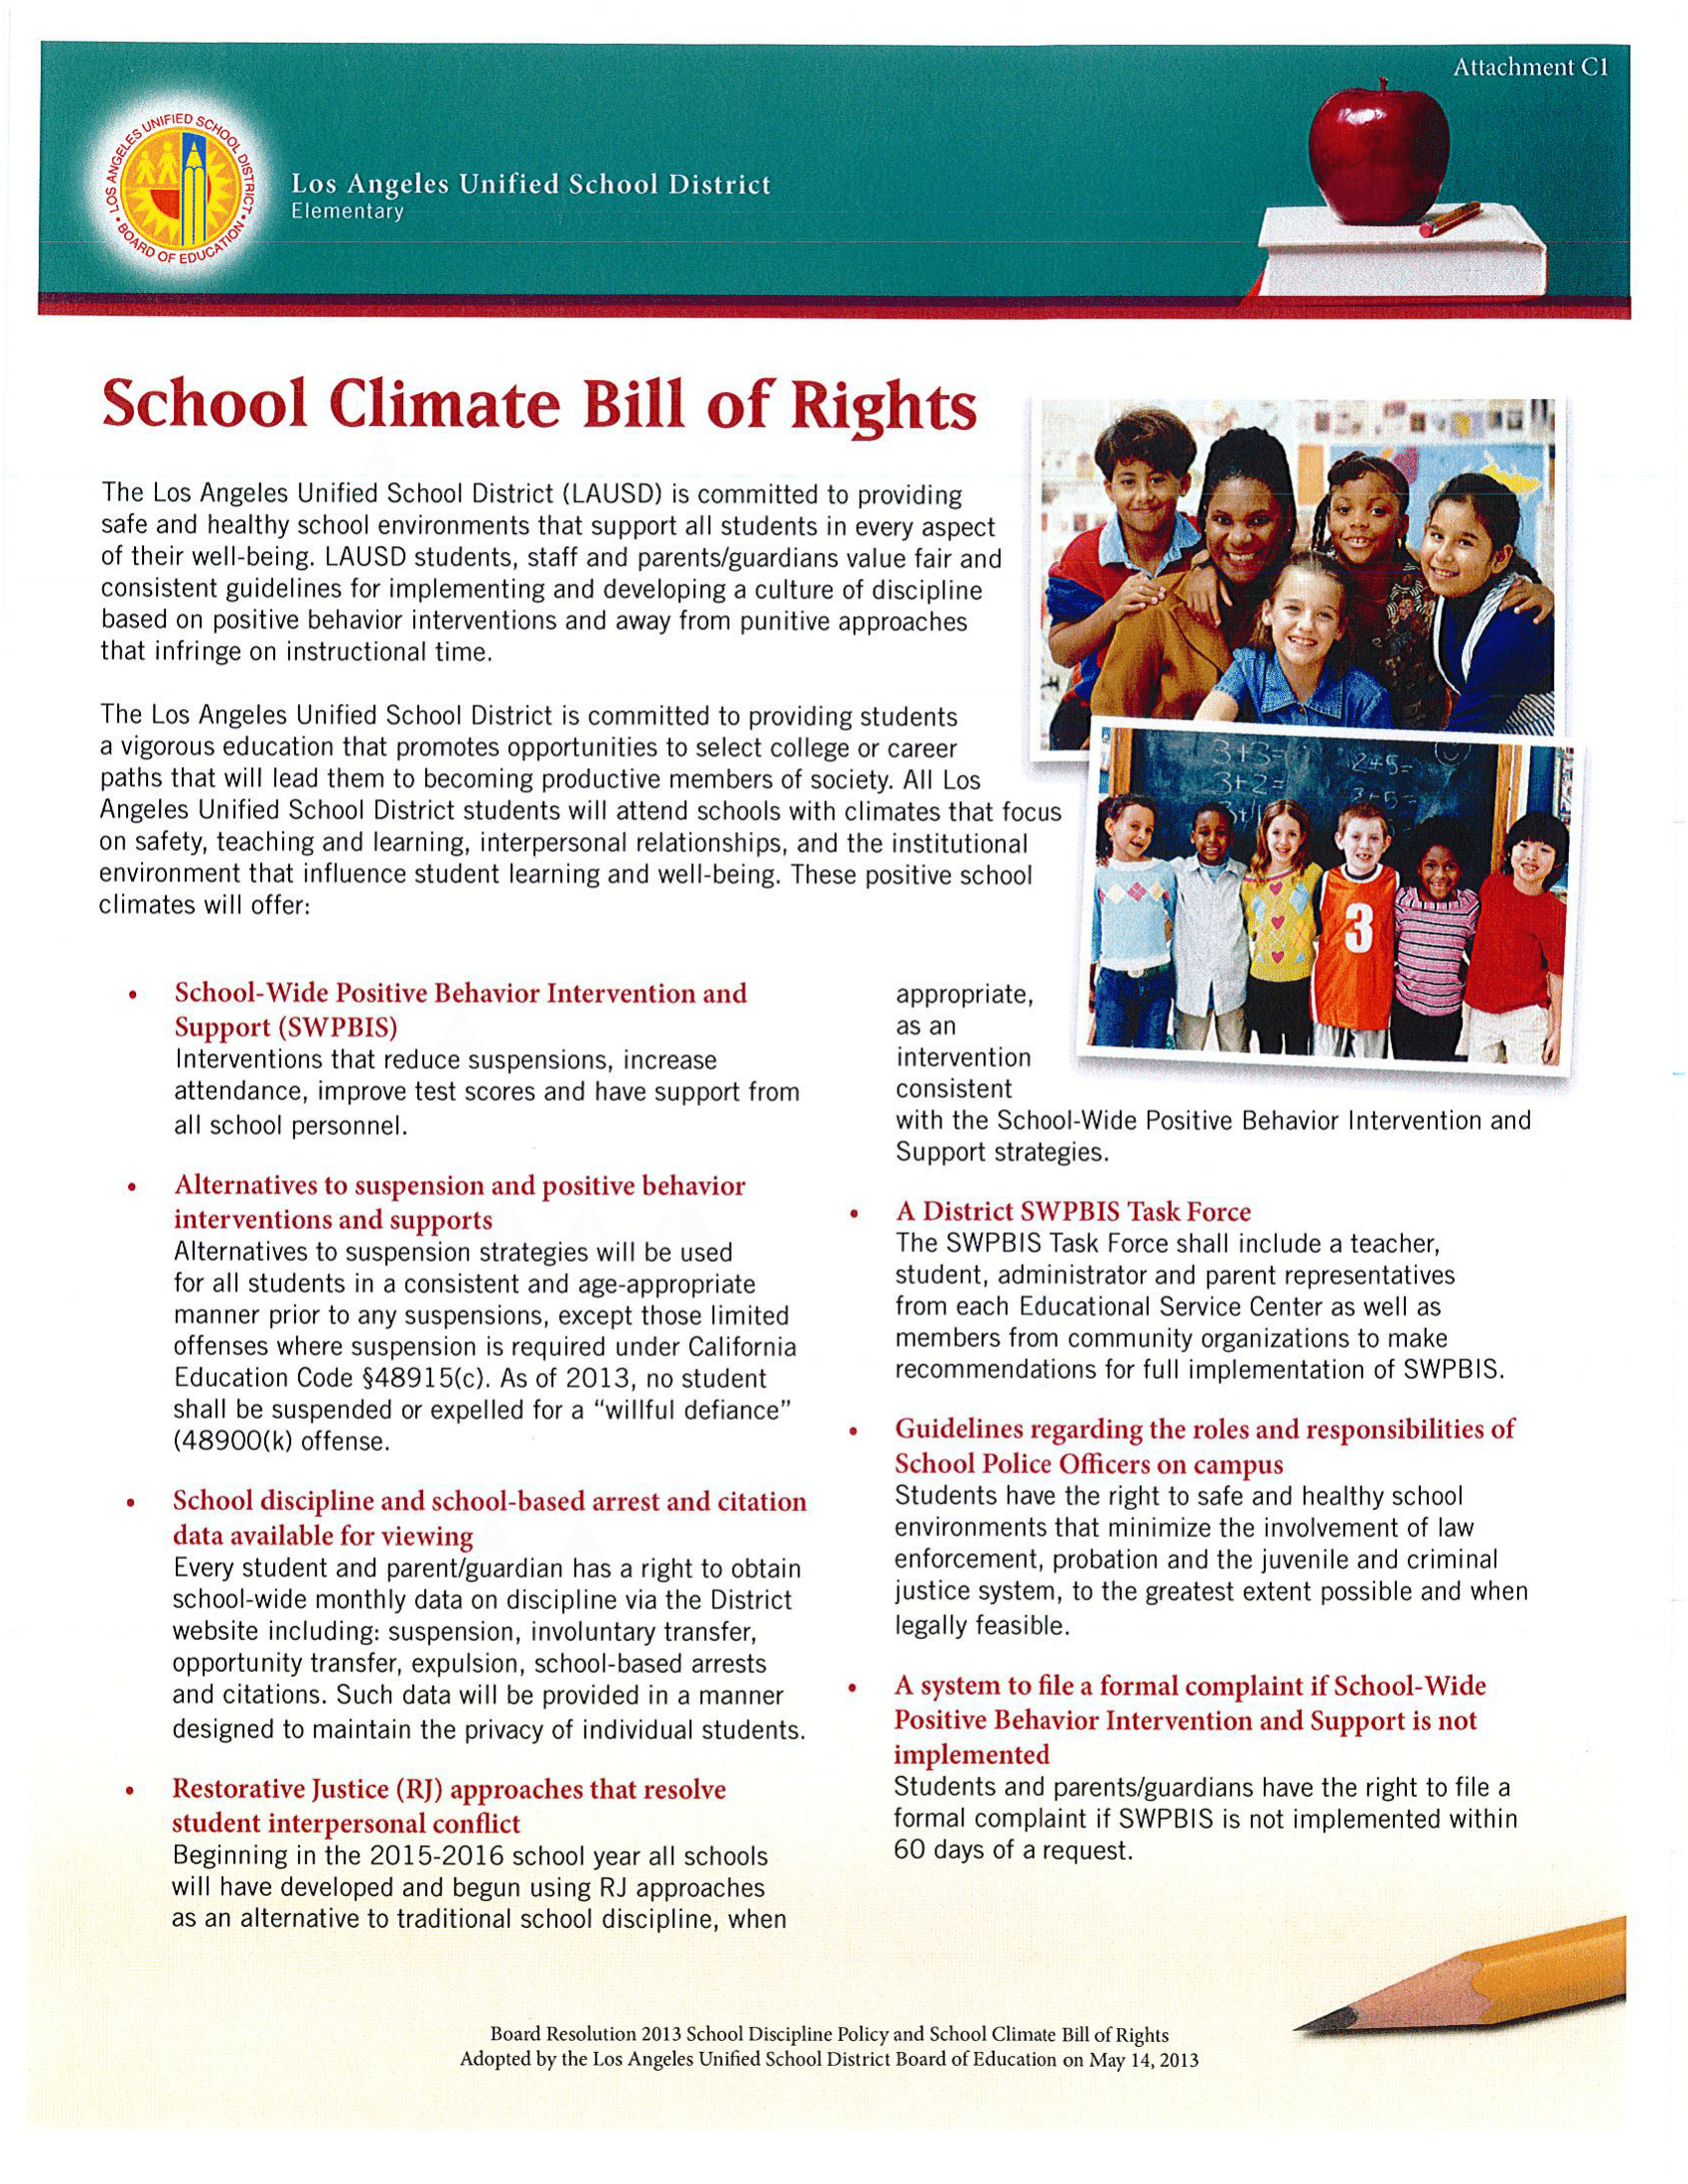 School Climate Bill of Rights-1.png